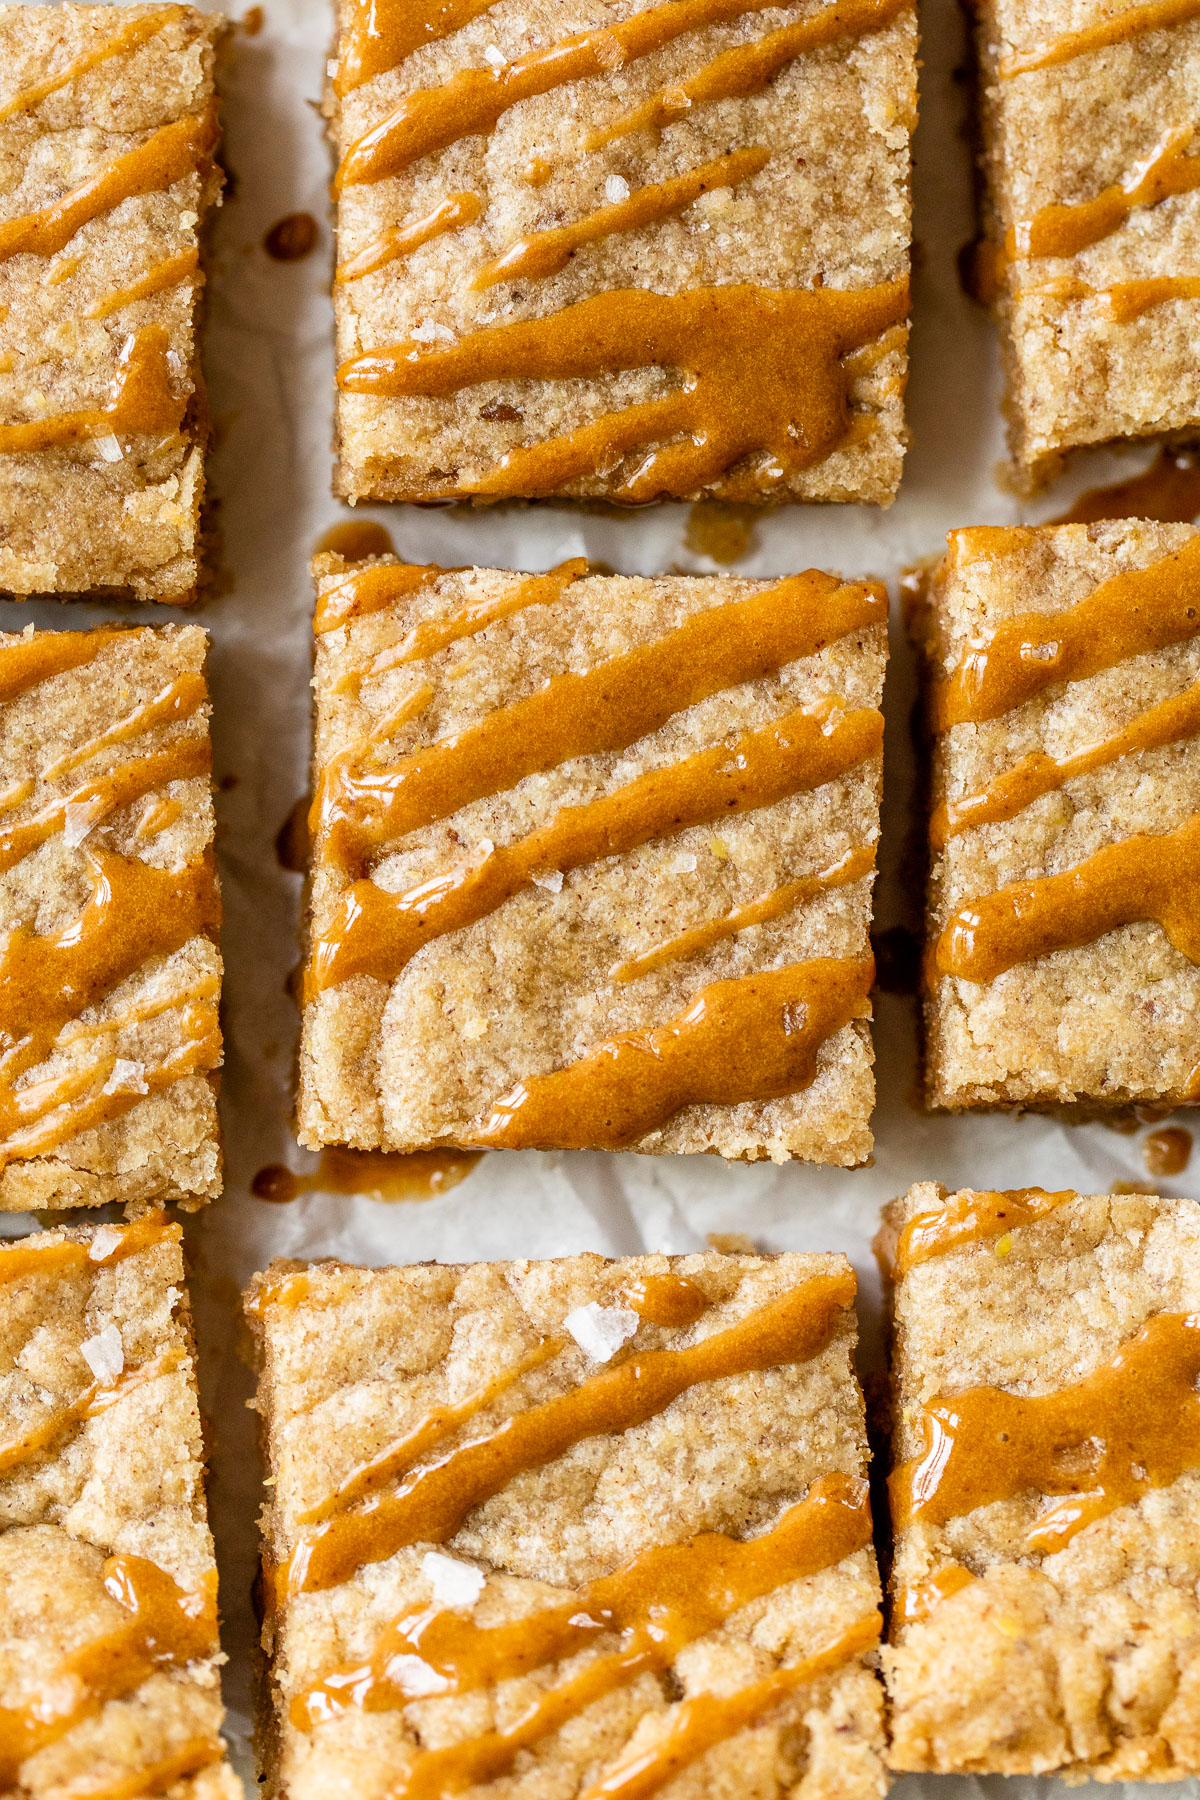 bars on parchment paper with a caramel-colored drizzle of icing on top